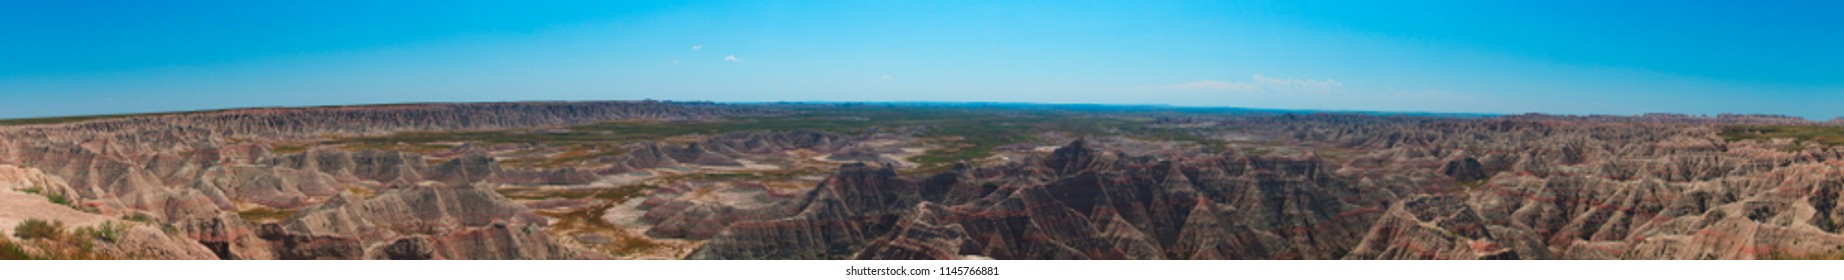 A panoramic of The Wall in Badlands National Park, South Dakota, United States